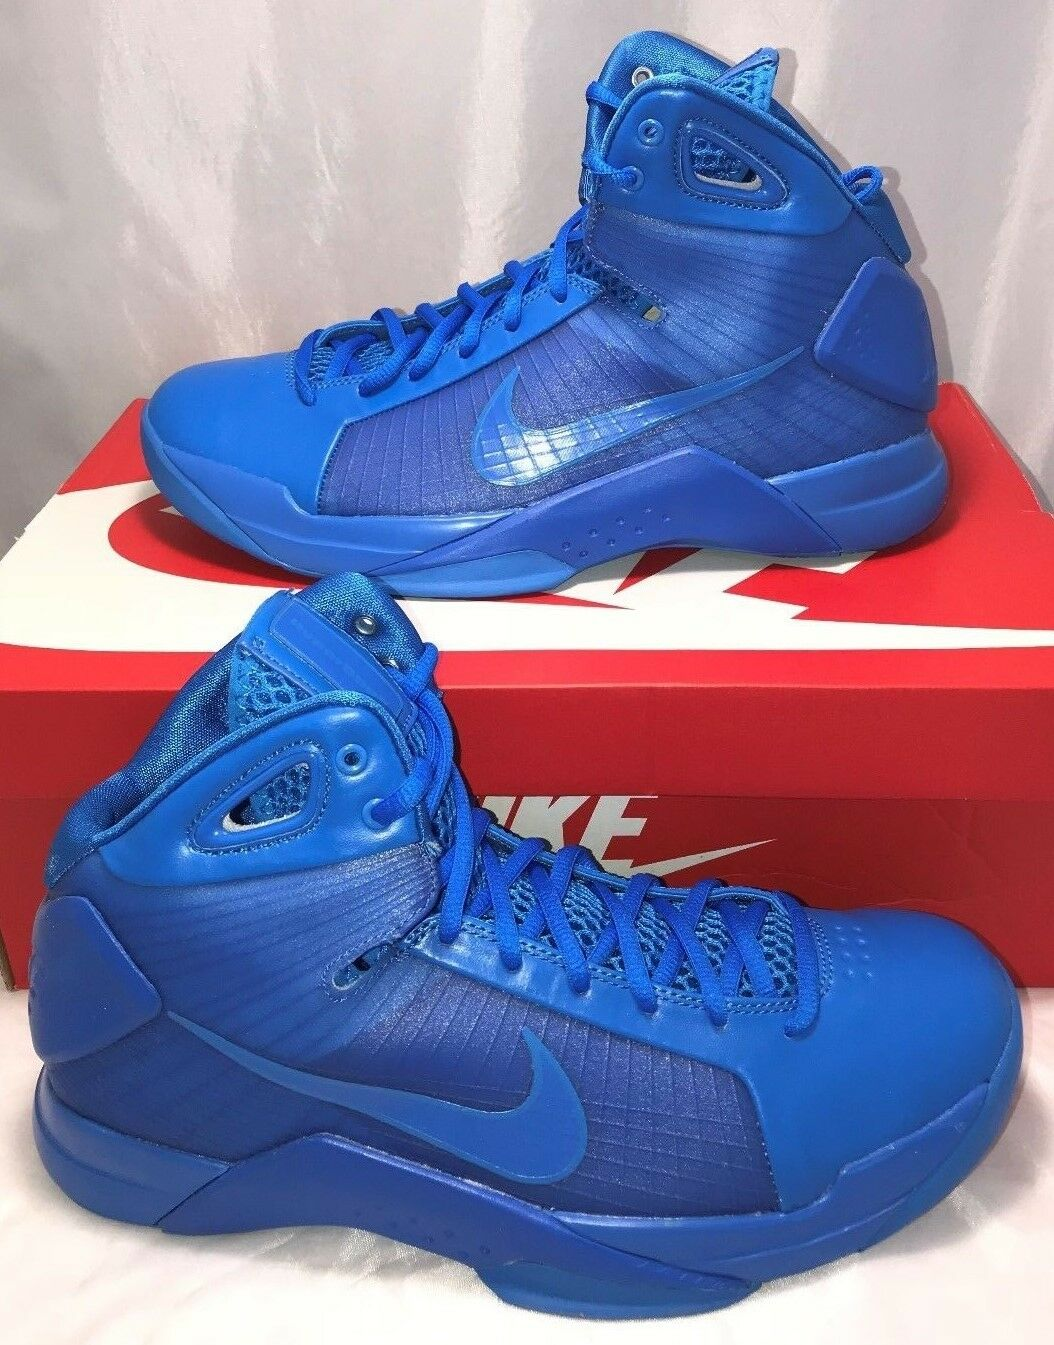 Nike Mens Size 9.5 Hyperdunk 08 Basketball Shoes Photo Blue Olympics Rare